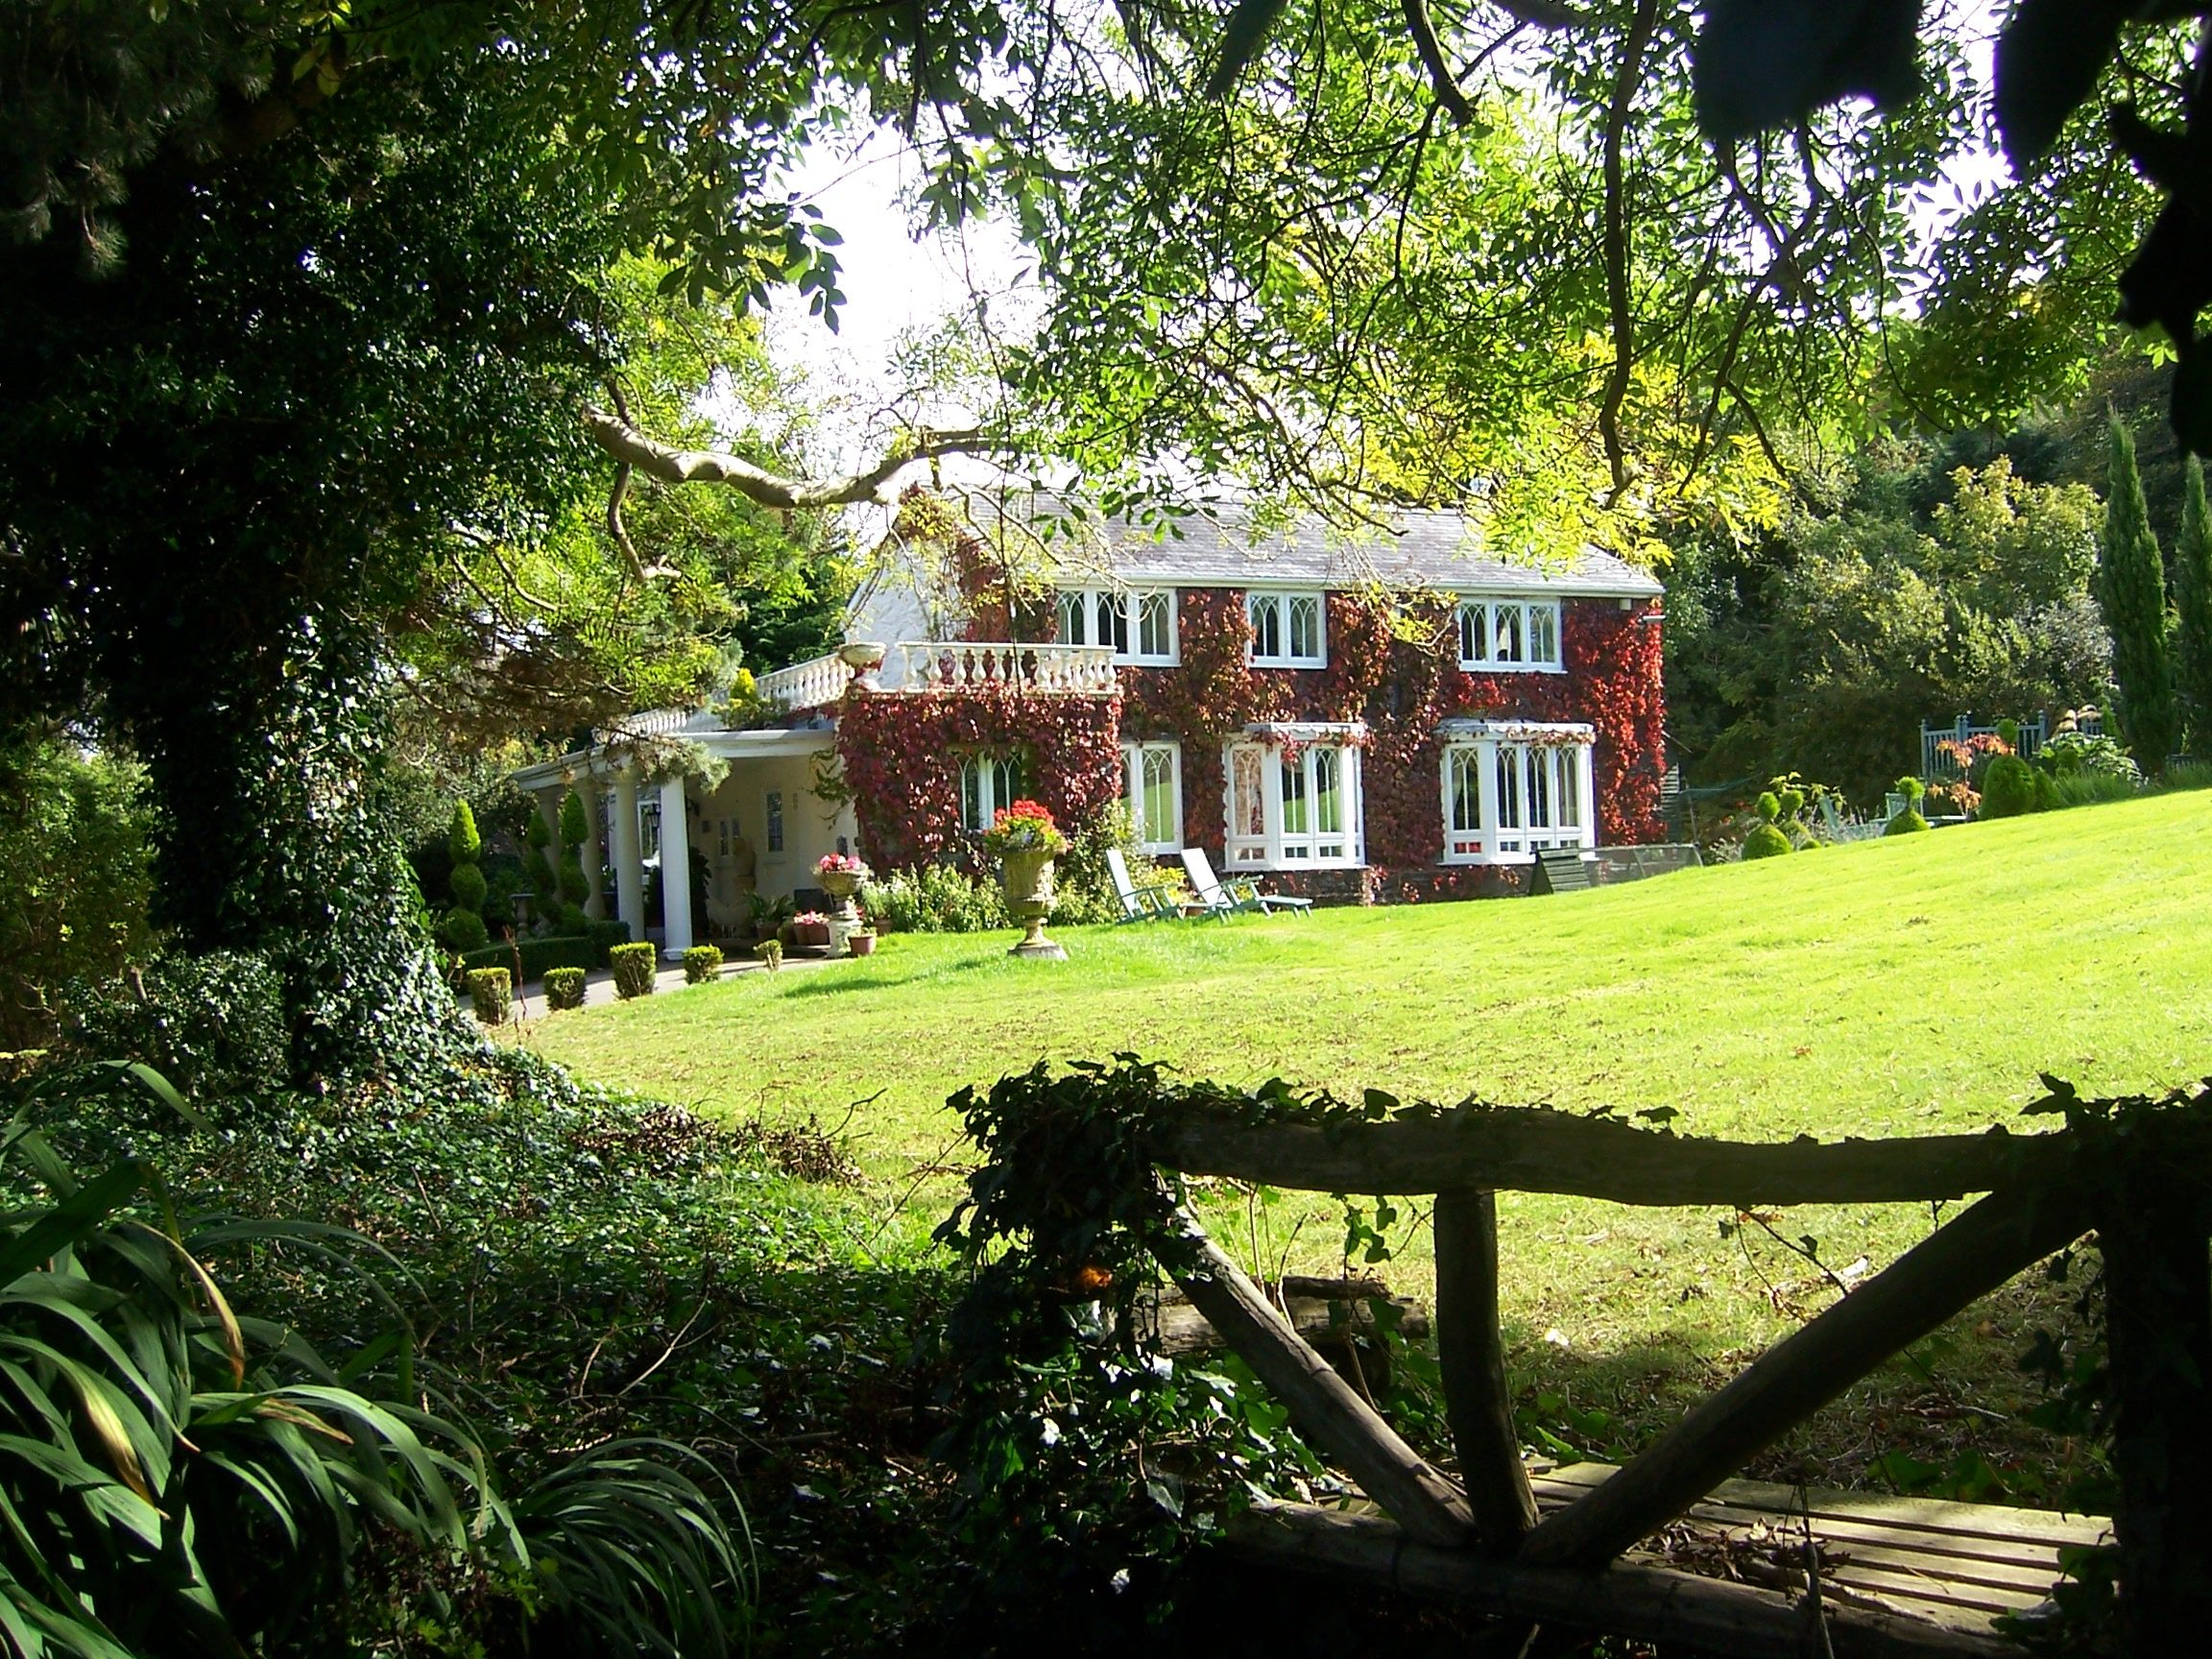 Property image Sell property, Garden arch, Detached house